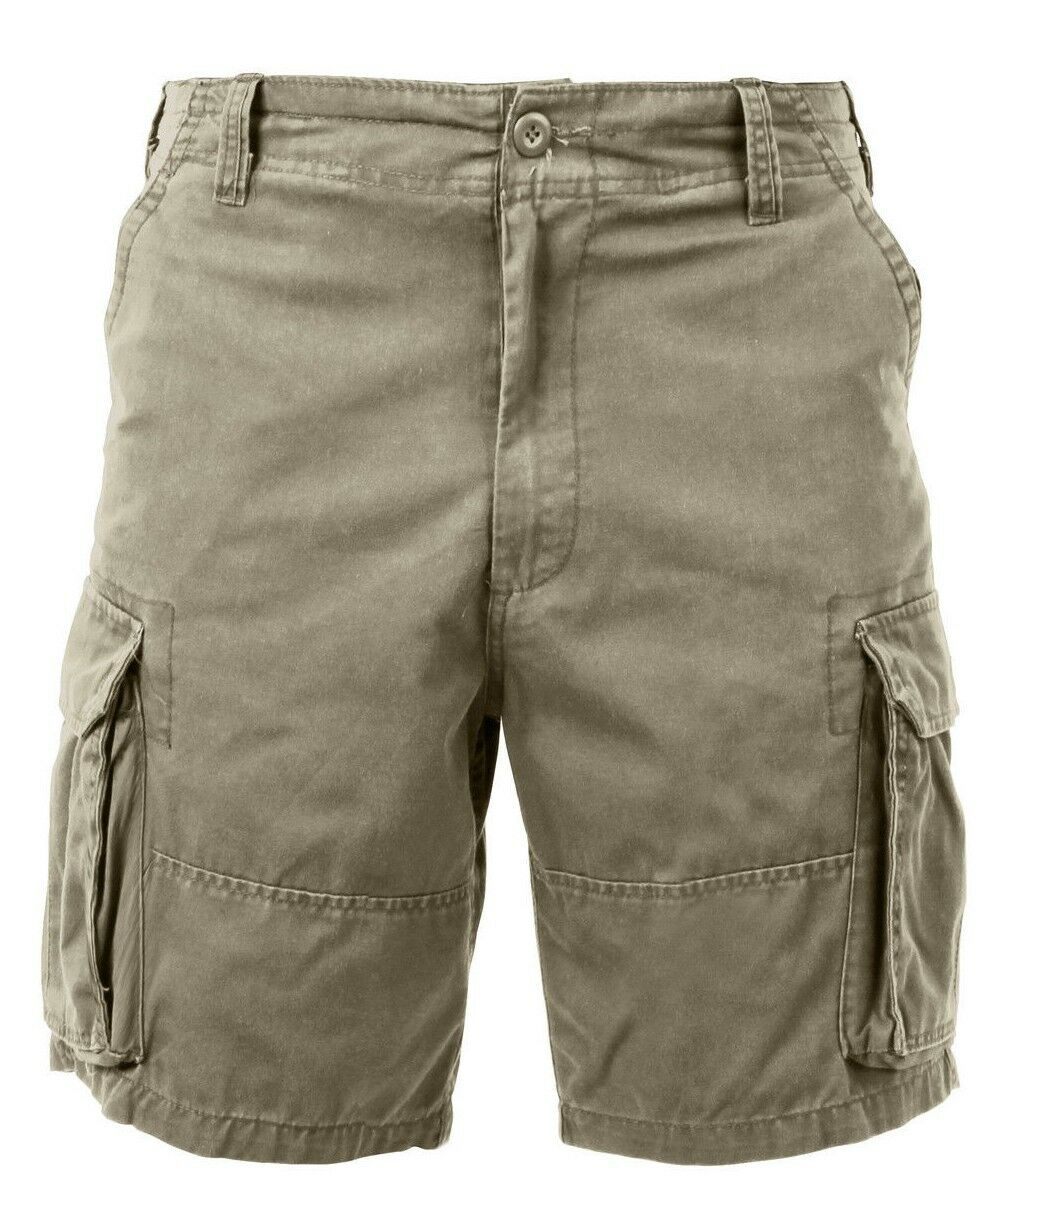 Shorts khaki tan cargo washed vintage look military style mens redhco 2170